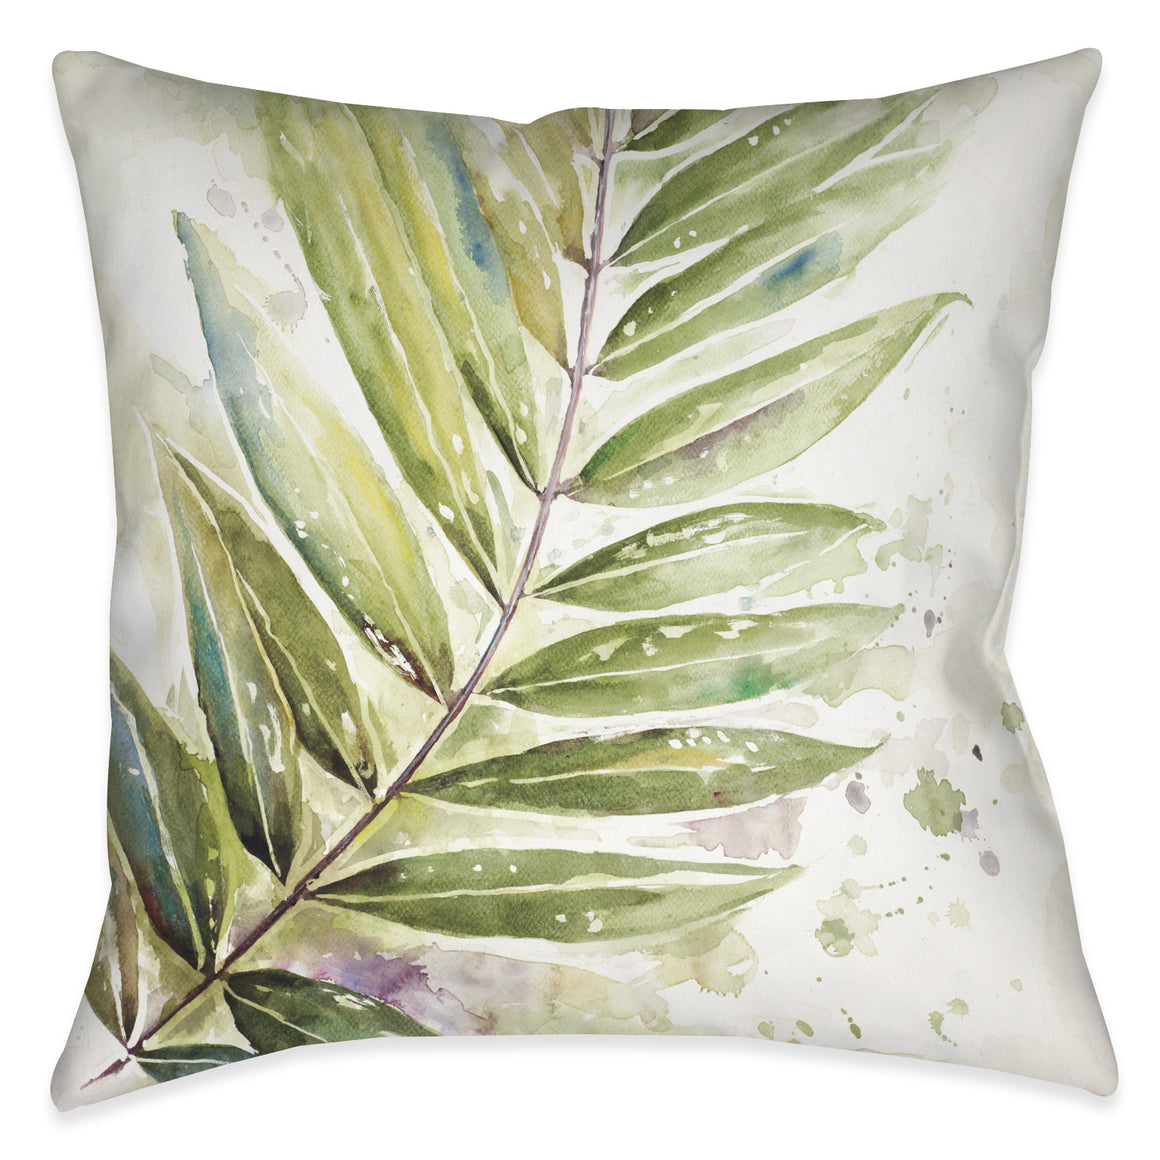 Watercolor Jungle I Outdoor Decorative Pillow